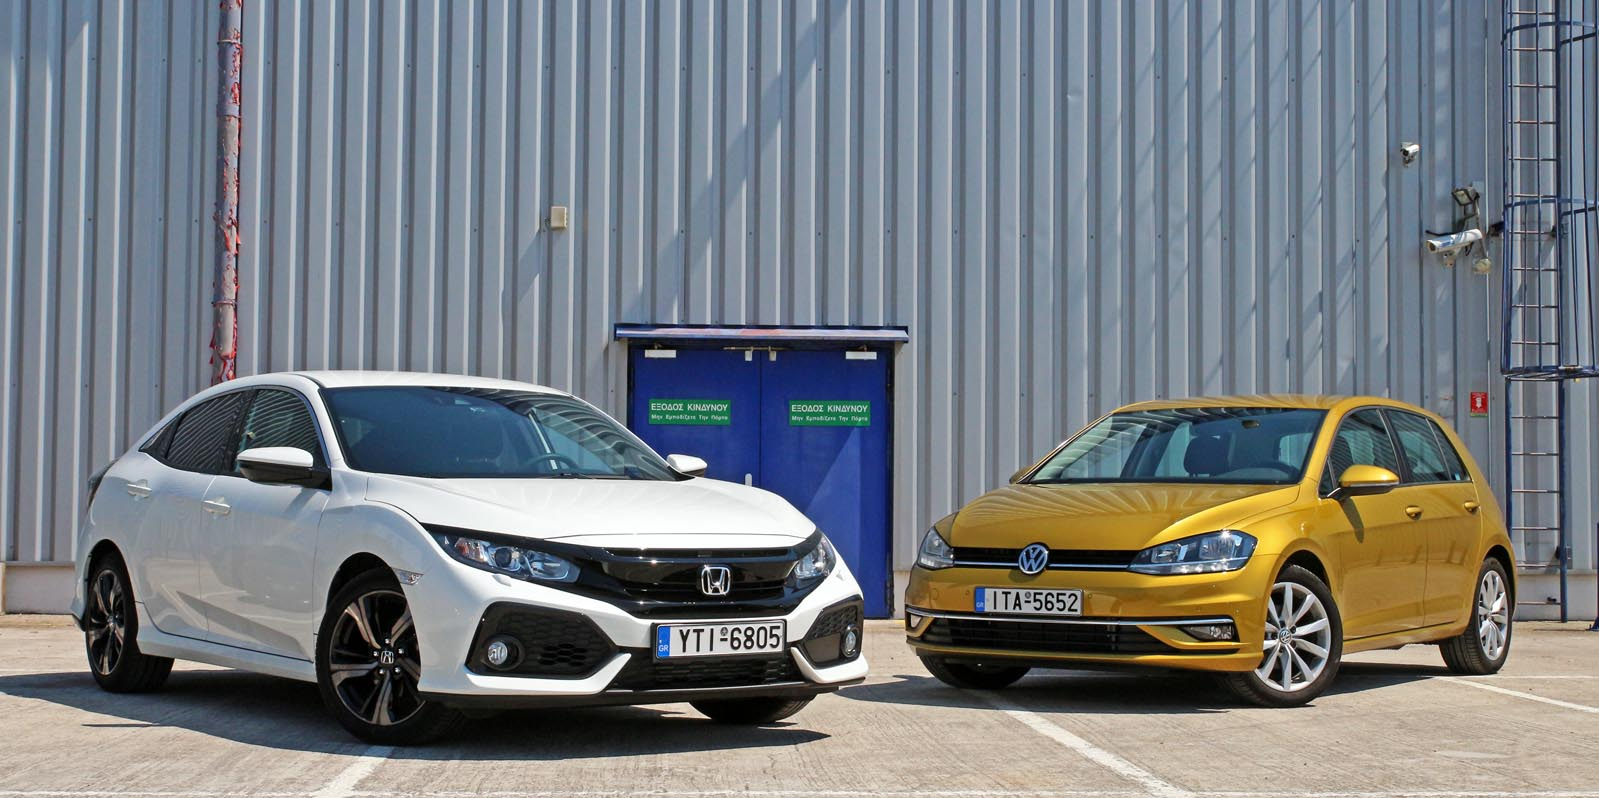 Photo of Honda Civic 1.0 VTEC Turbo vs Volkswagen Golf 1.0 TSI [test drive]